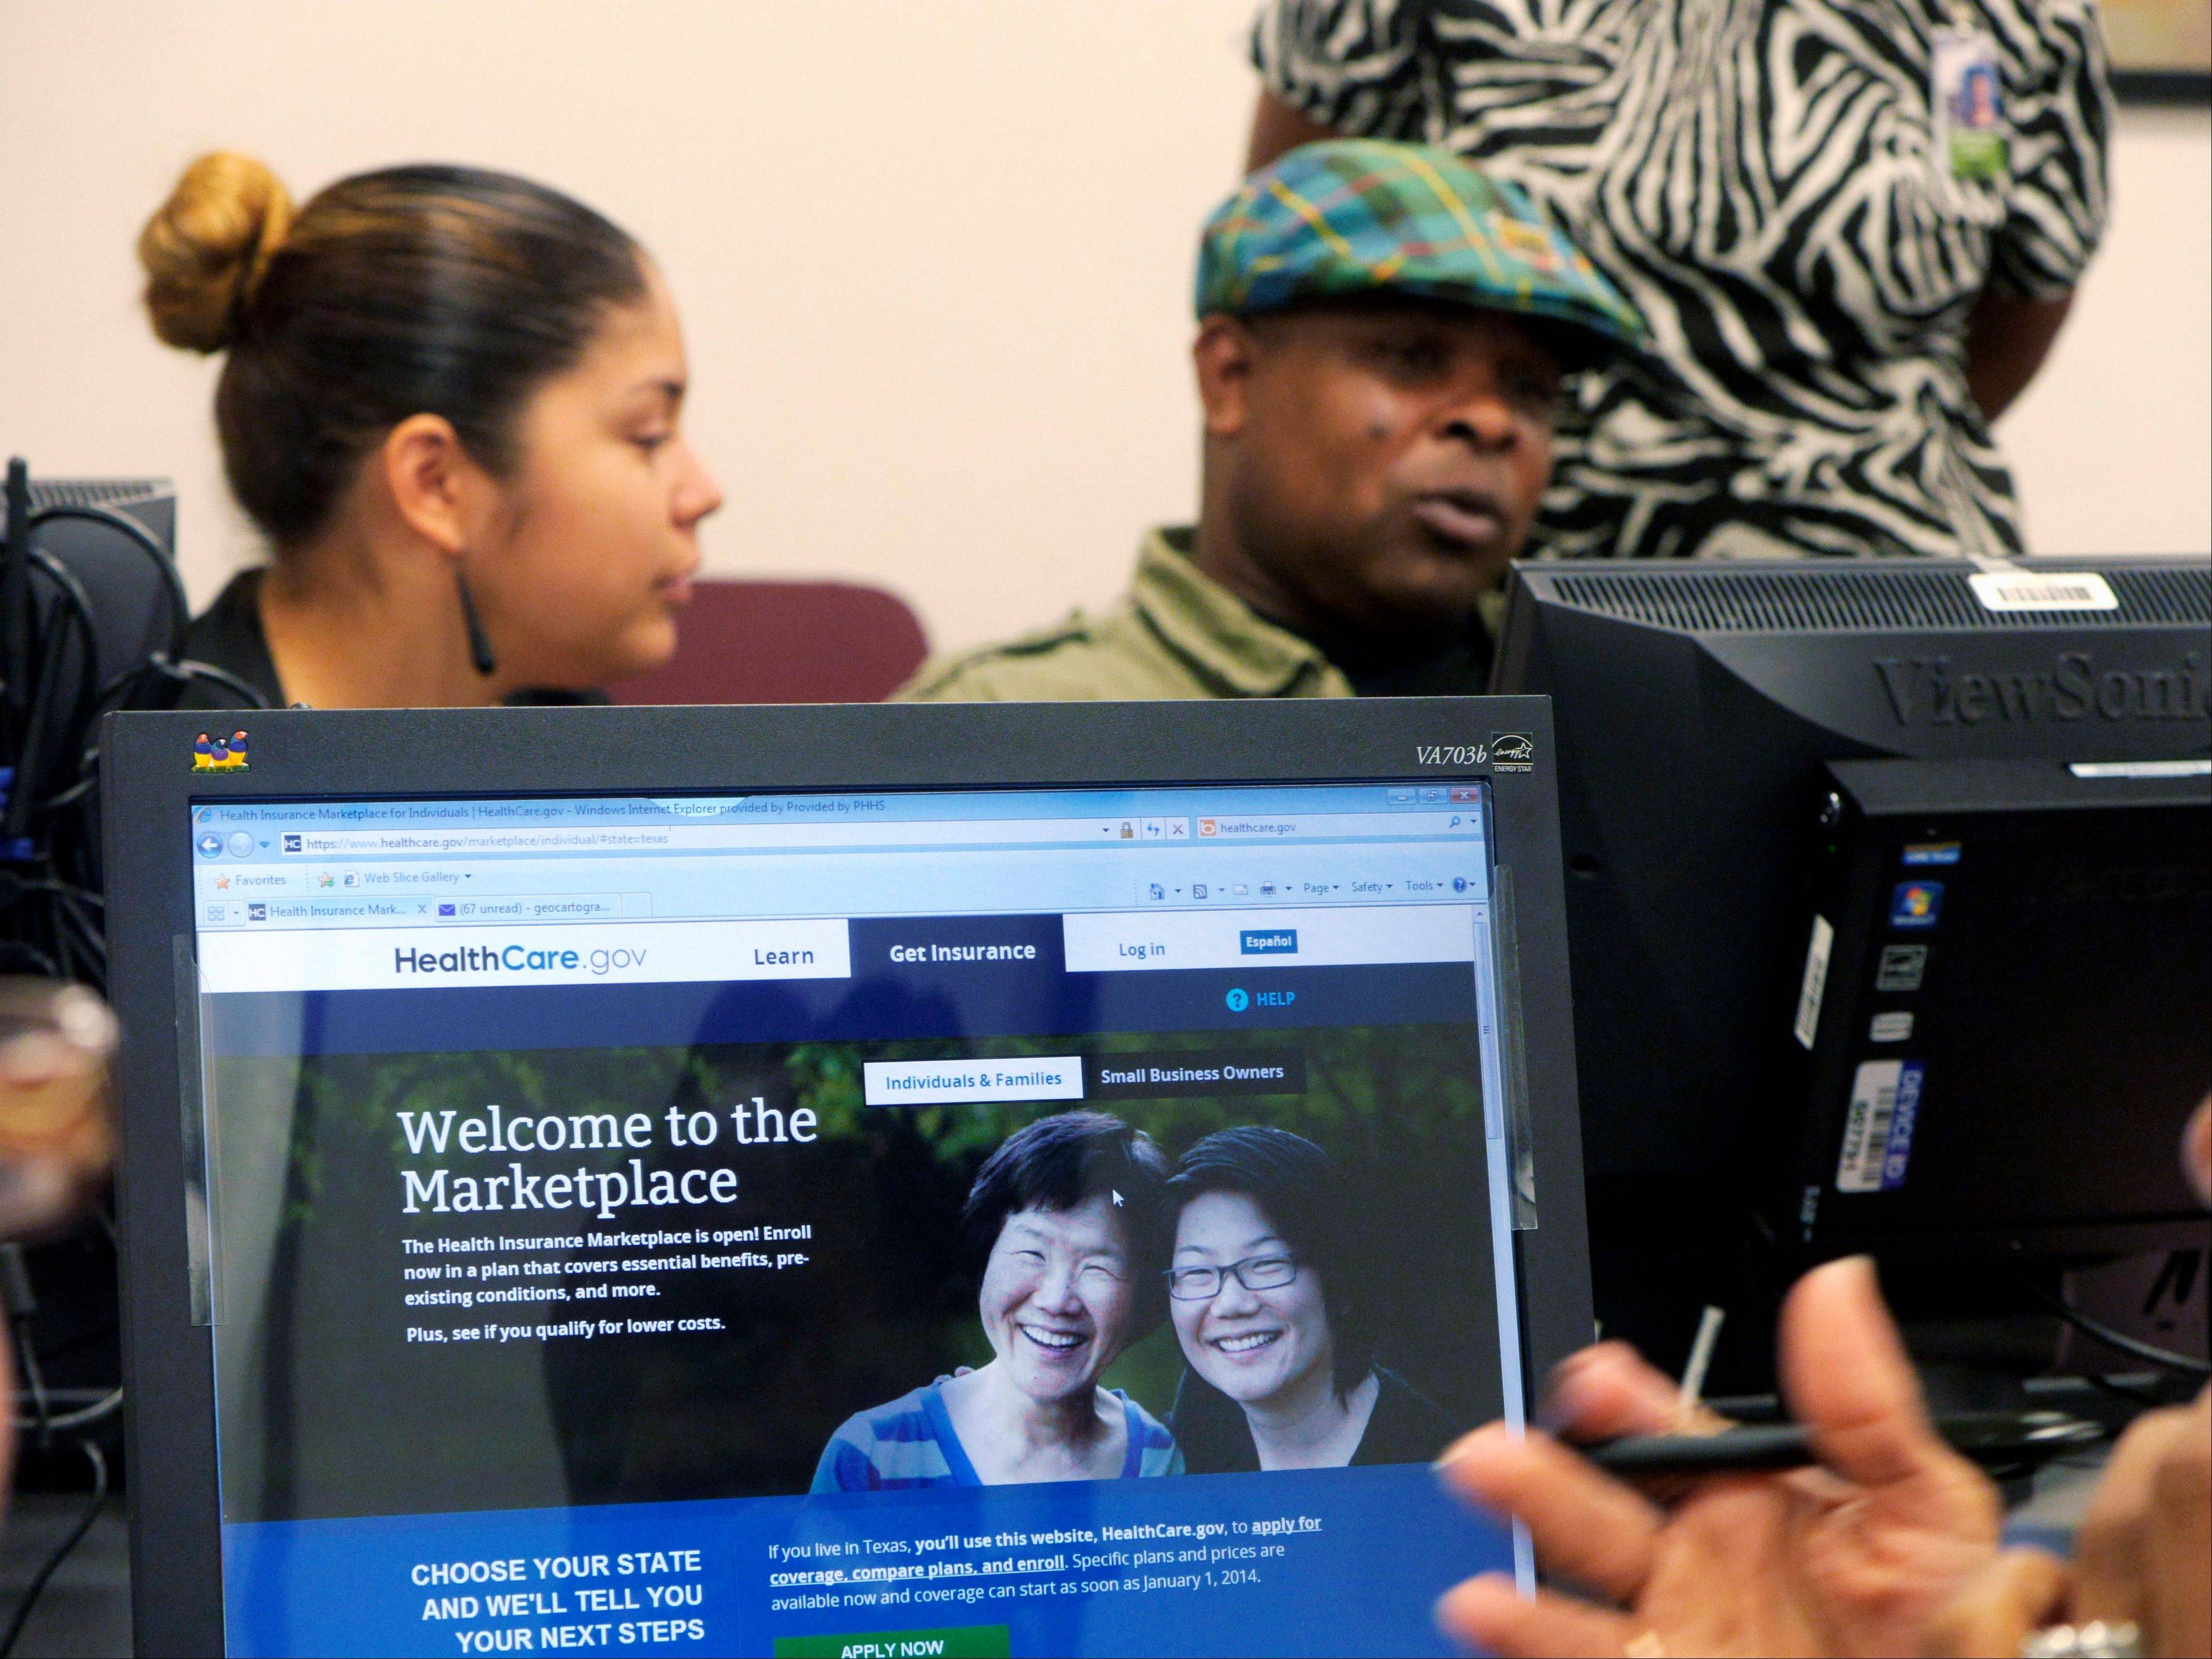 Parkland Memorial Hospital financial counselor Tiffany Ruiz, left, helps Vyncent Bosh sign up for insurance under the Affordable Care Act last week in Dallas.